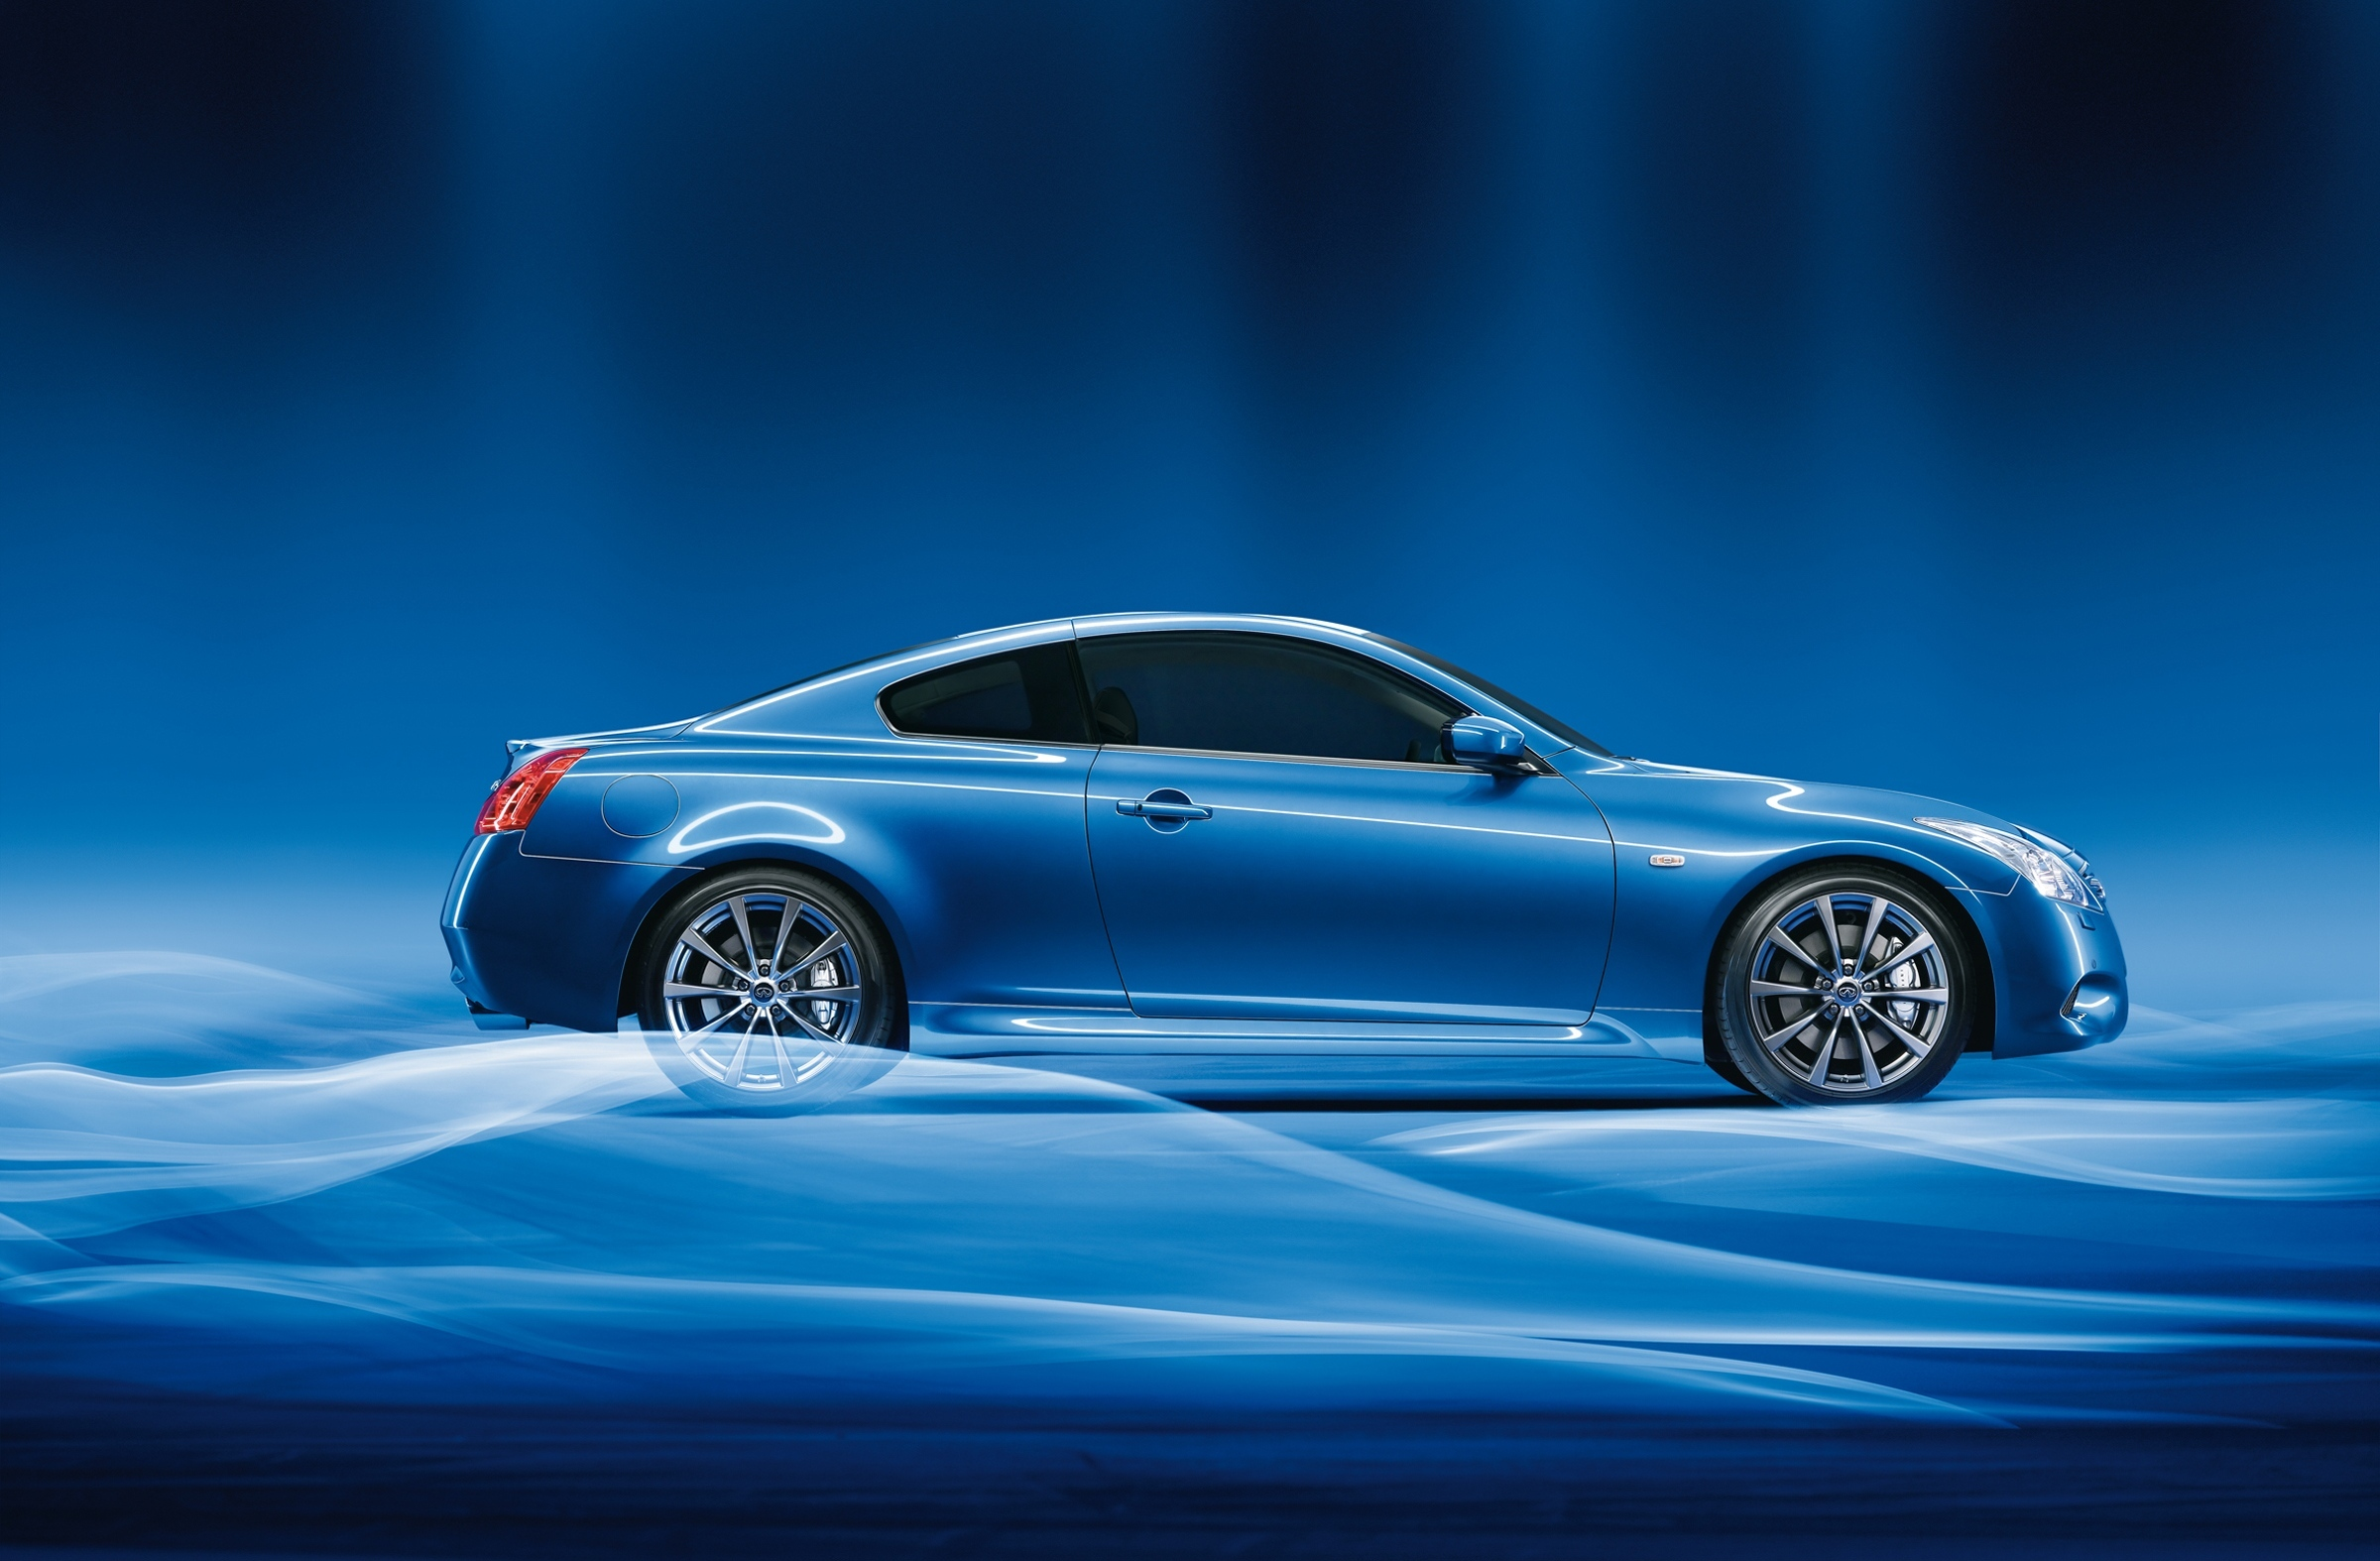 Infinity G37 Coupe